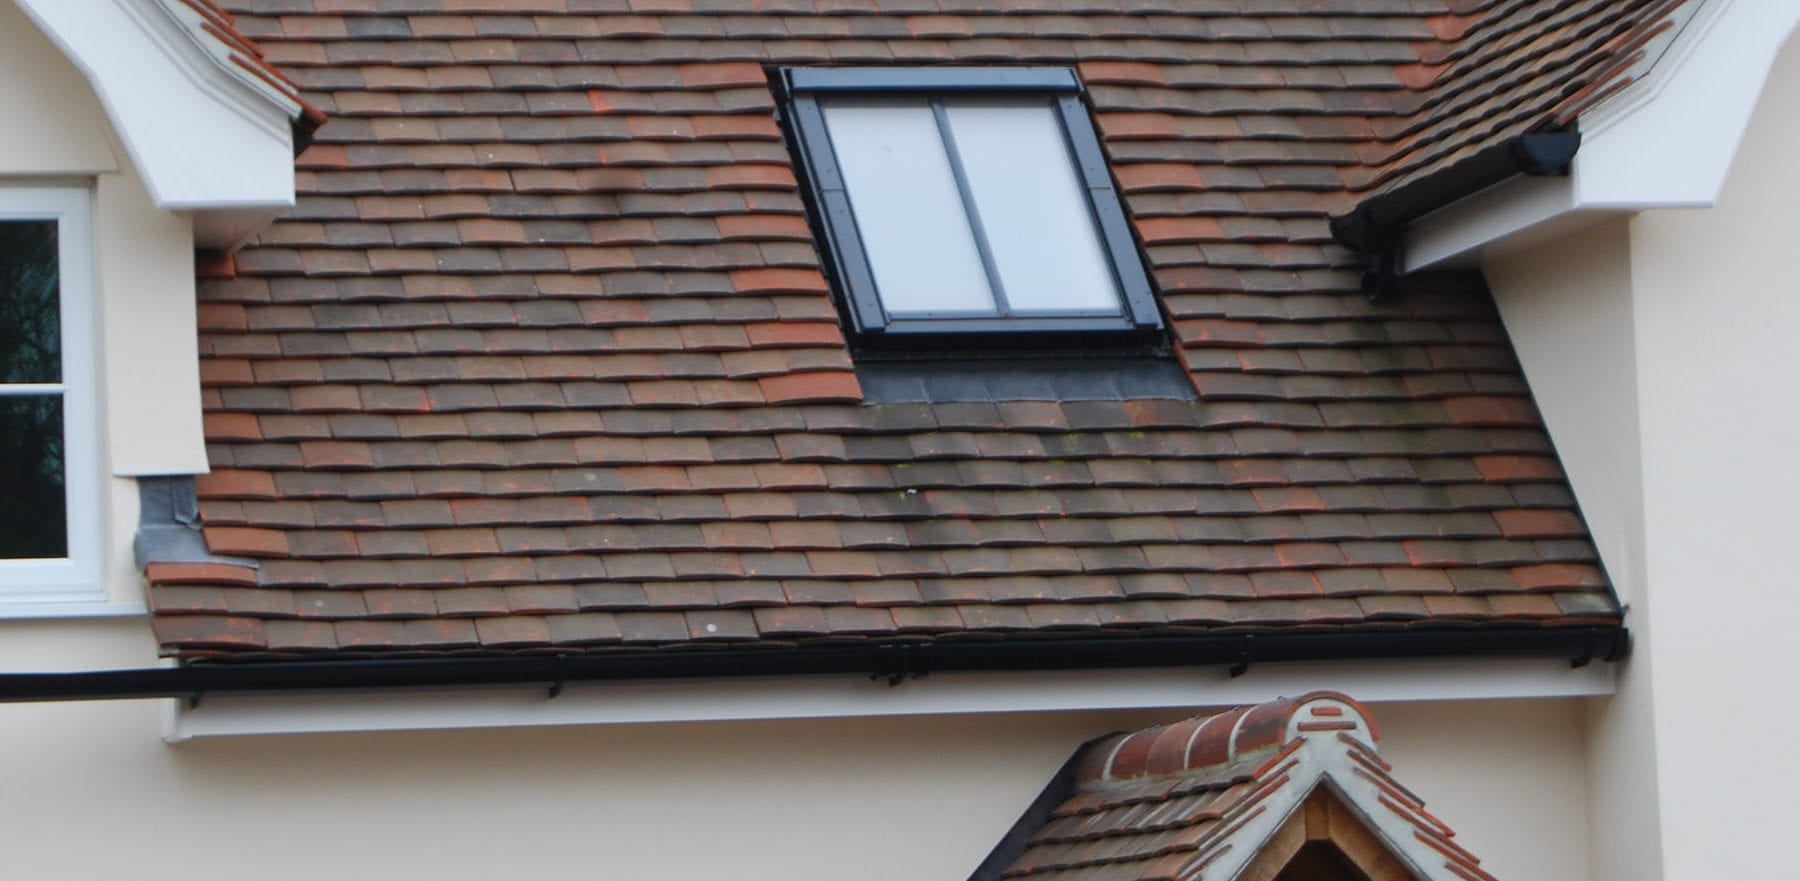 Lifestiles - Handcrafted Autumn Clay Roof Tiles - Bergholt, England 3